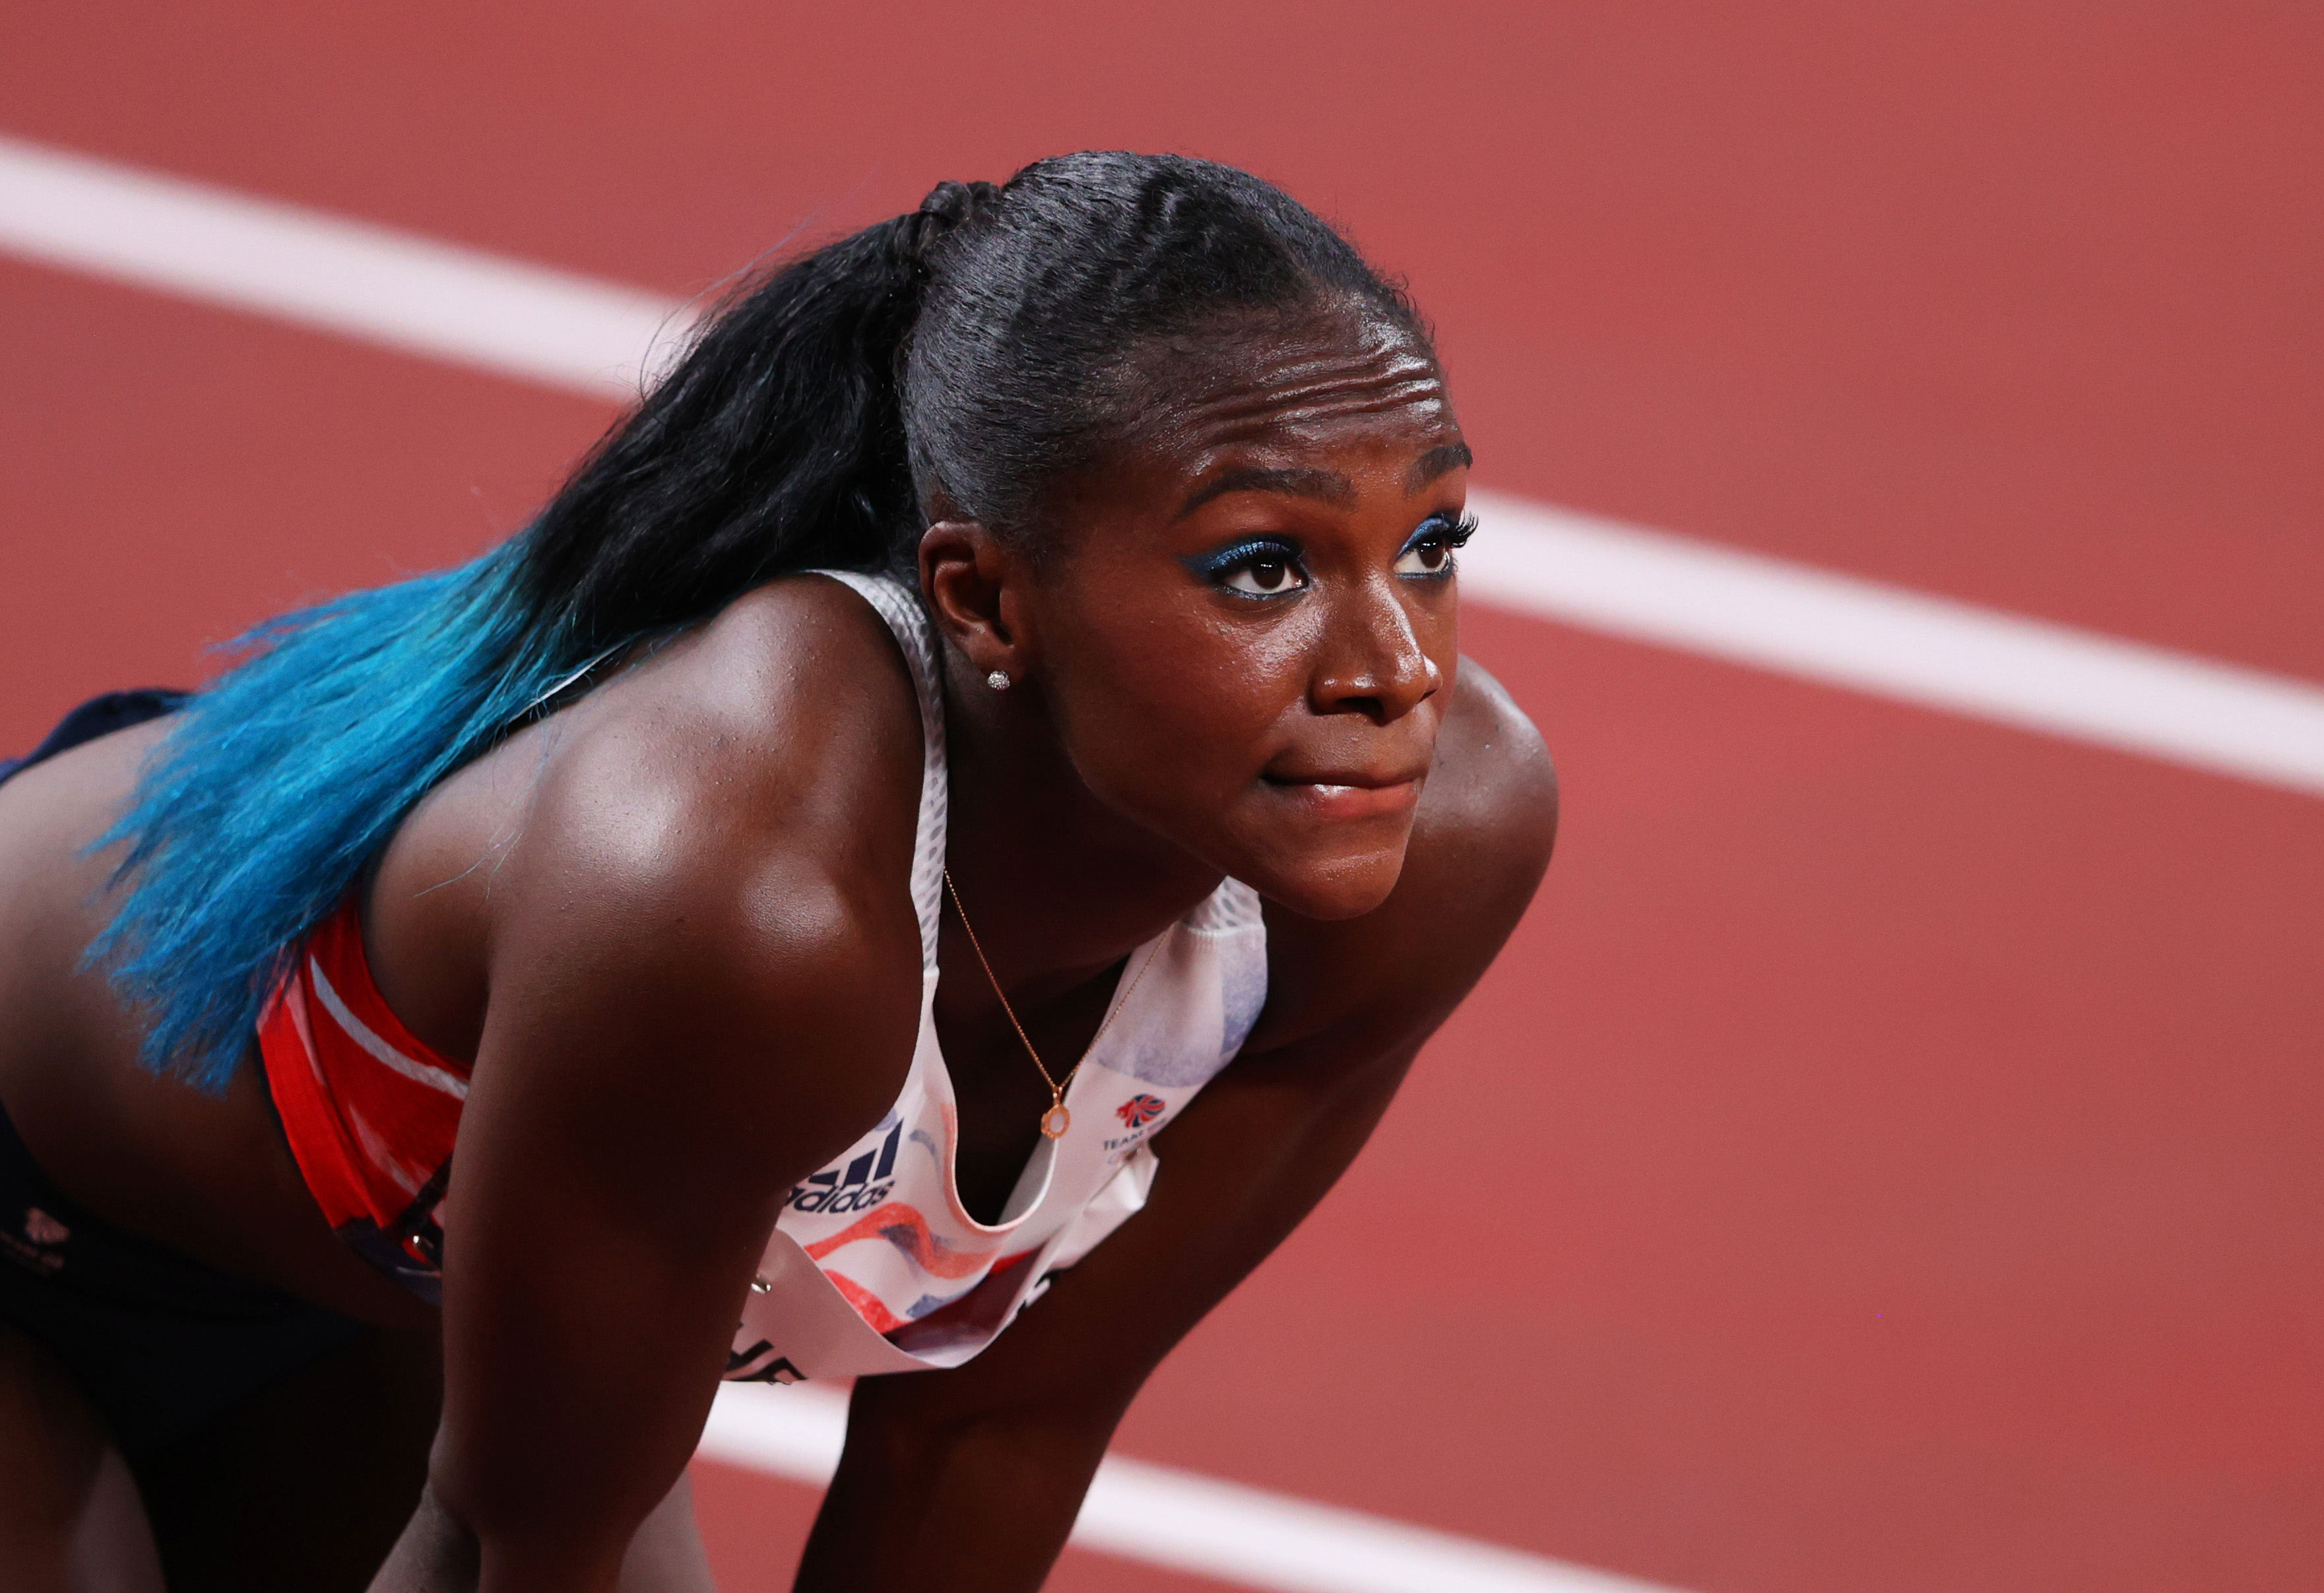 Great Britain's Dina Asher-Smith reacts after failing to qualify for the 100m final on July 31.